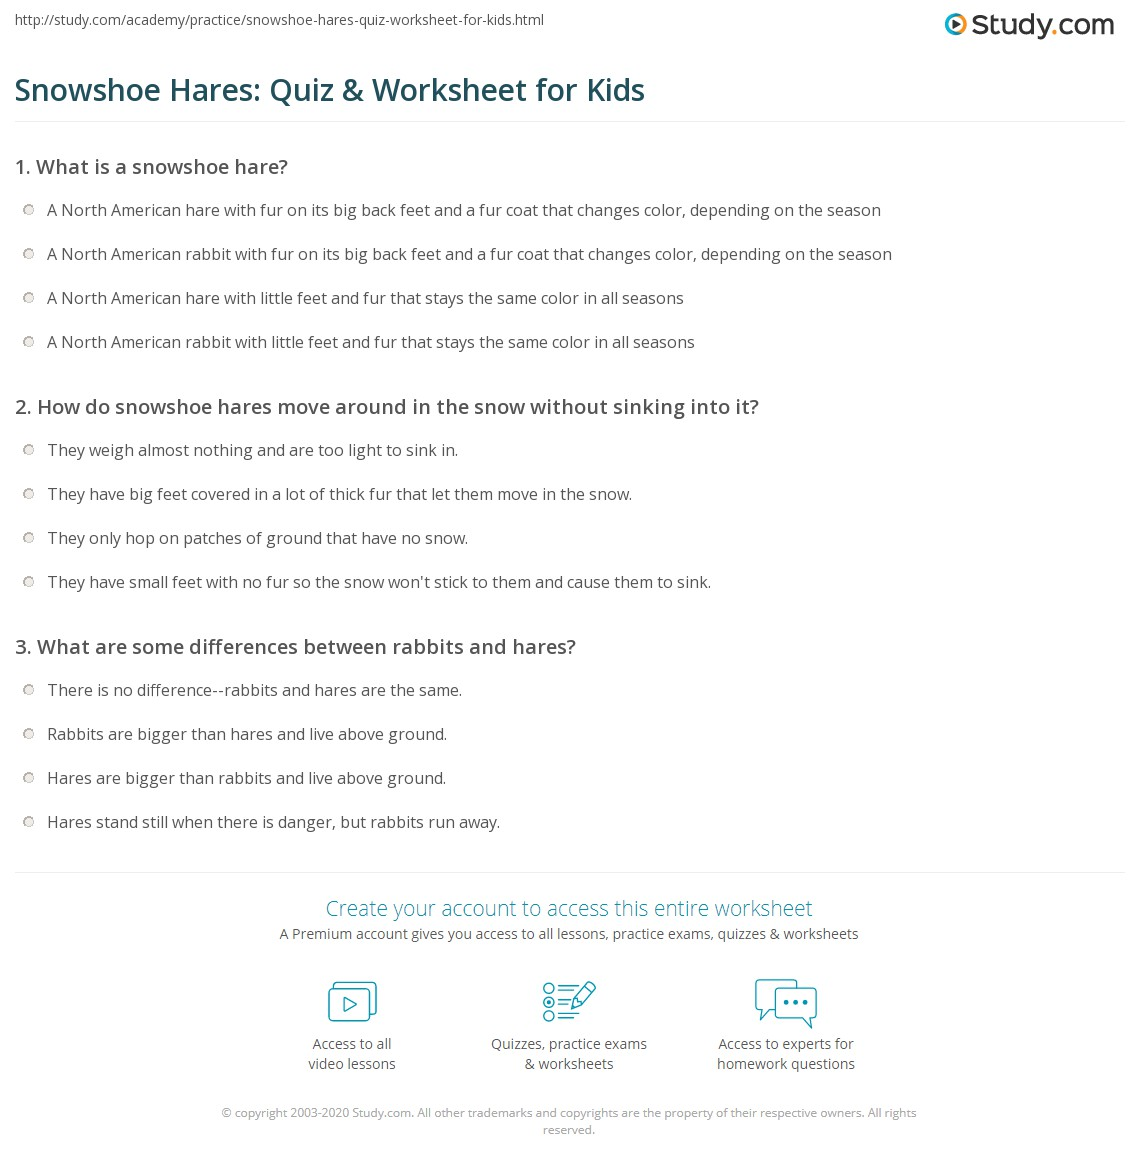 Snowshoe Hares Quiz Amp Worksheet For Kids